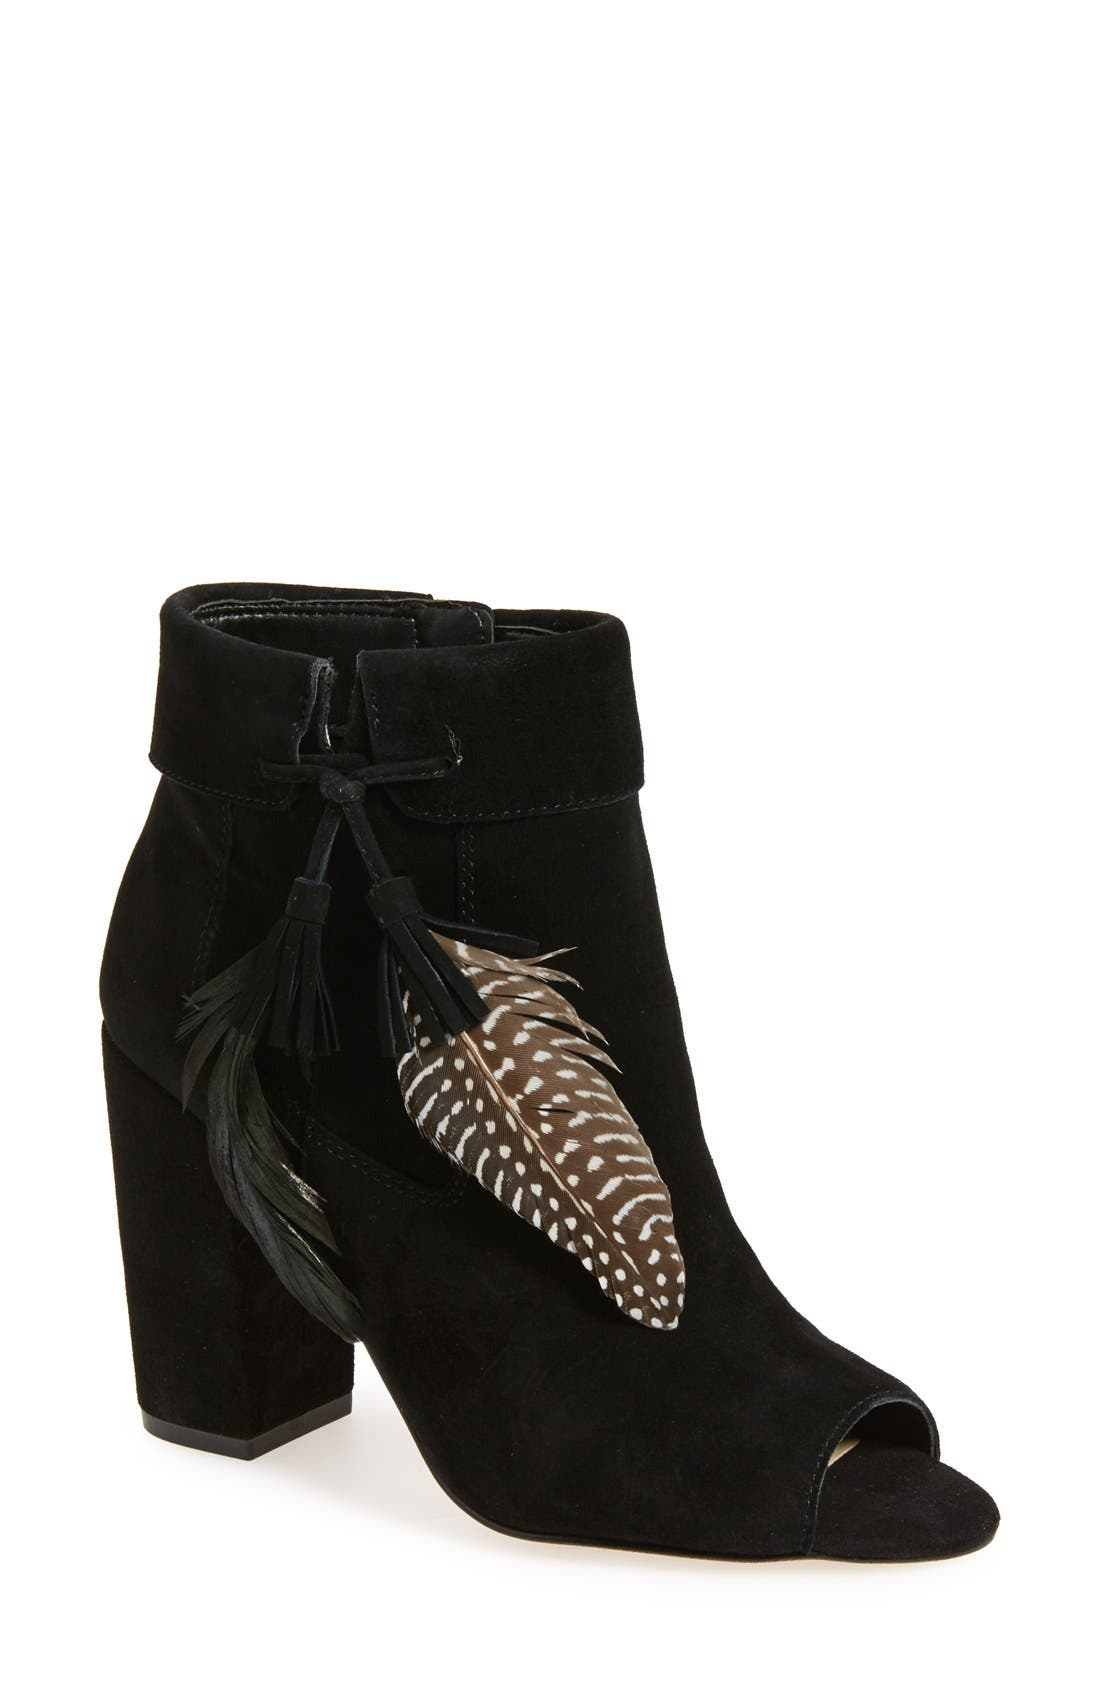 JESSICA SIMPSON 'Kailey' Feather Charm Peep Toe Bootie